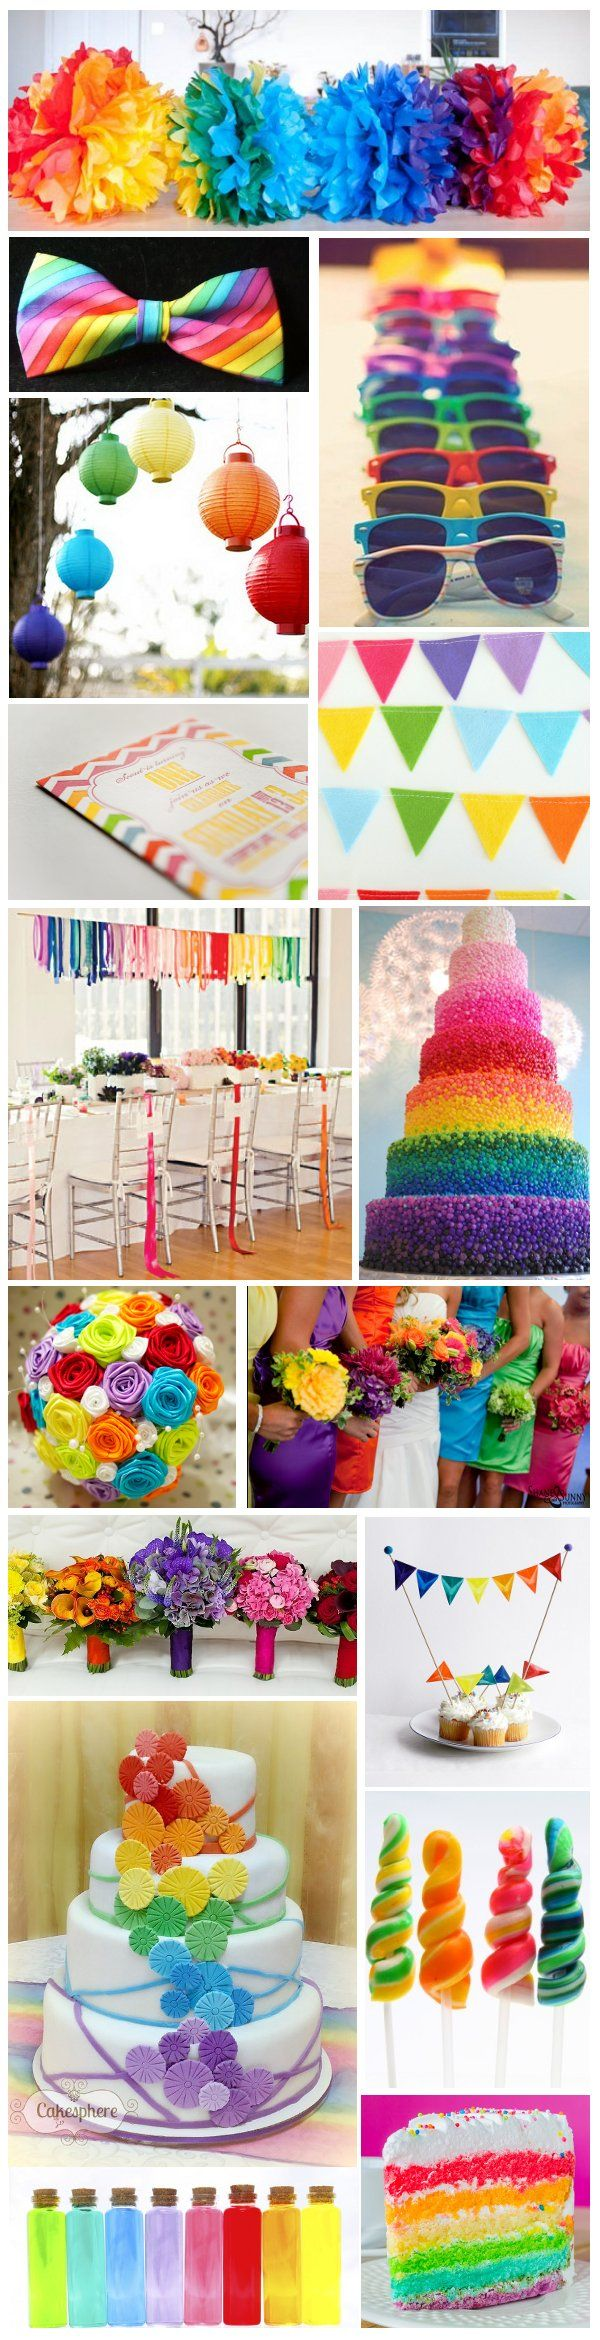 [Inspiration] Rainbow Wedding #mariage #wedding